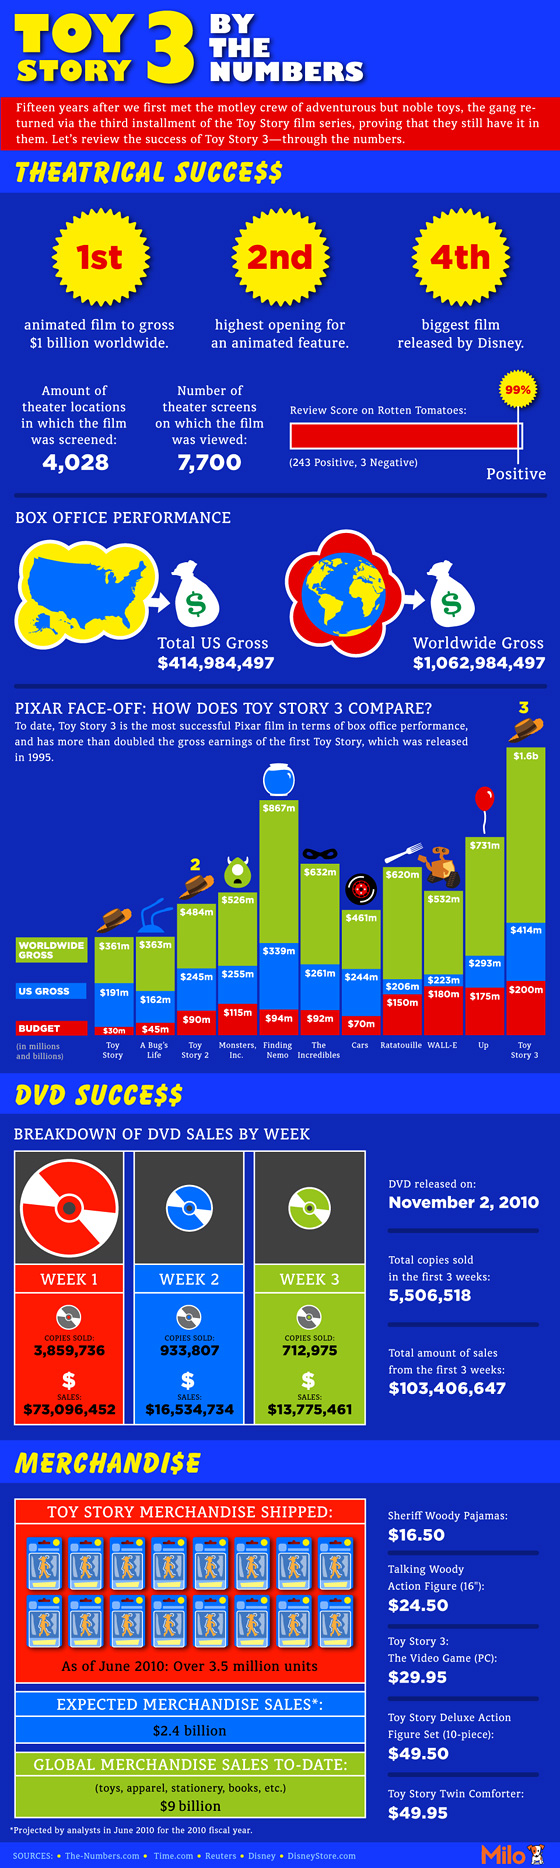 Toy Story 3 By The Numbers